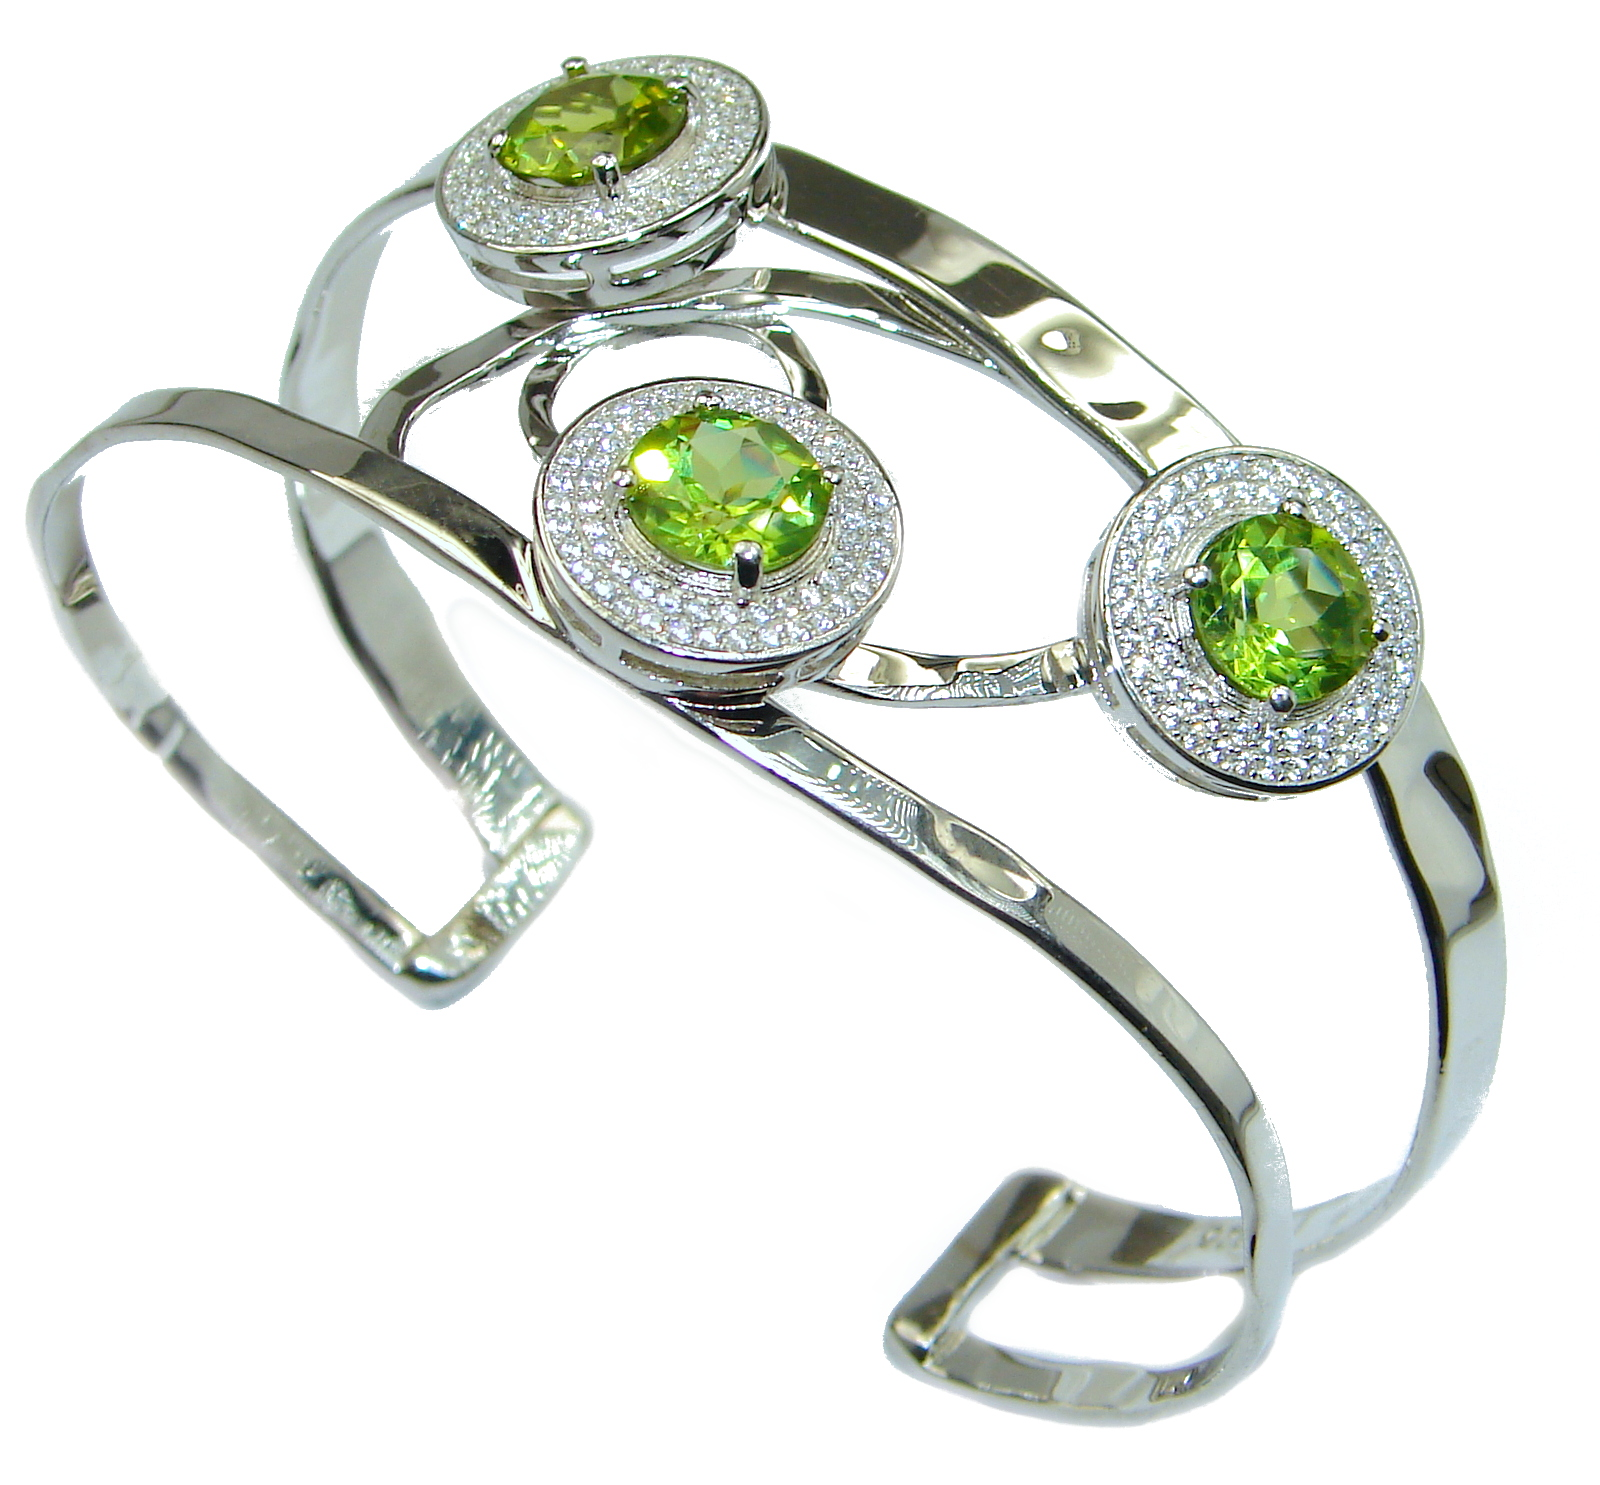 Genuine Peridot White Topaz .925 hammered Sterling Silver Bracelet / Cuff